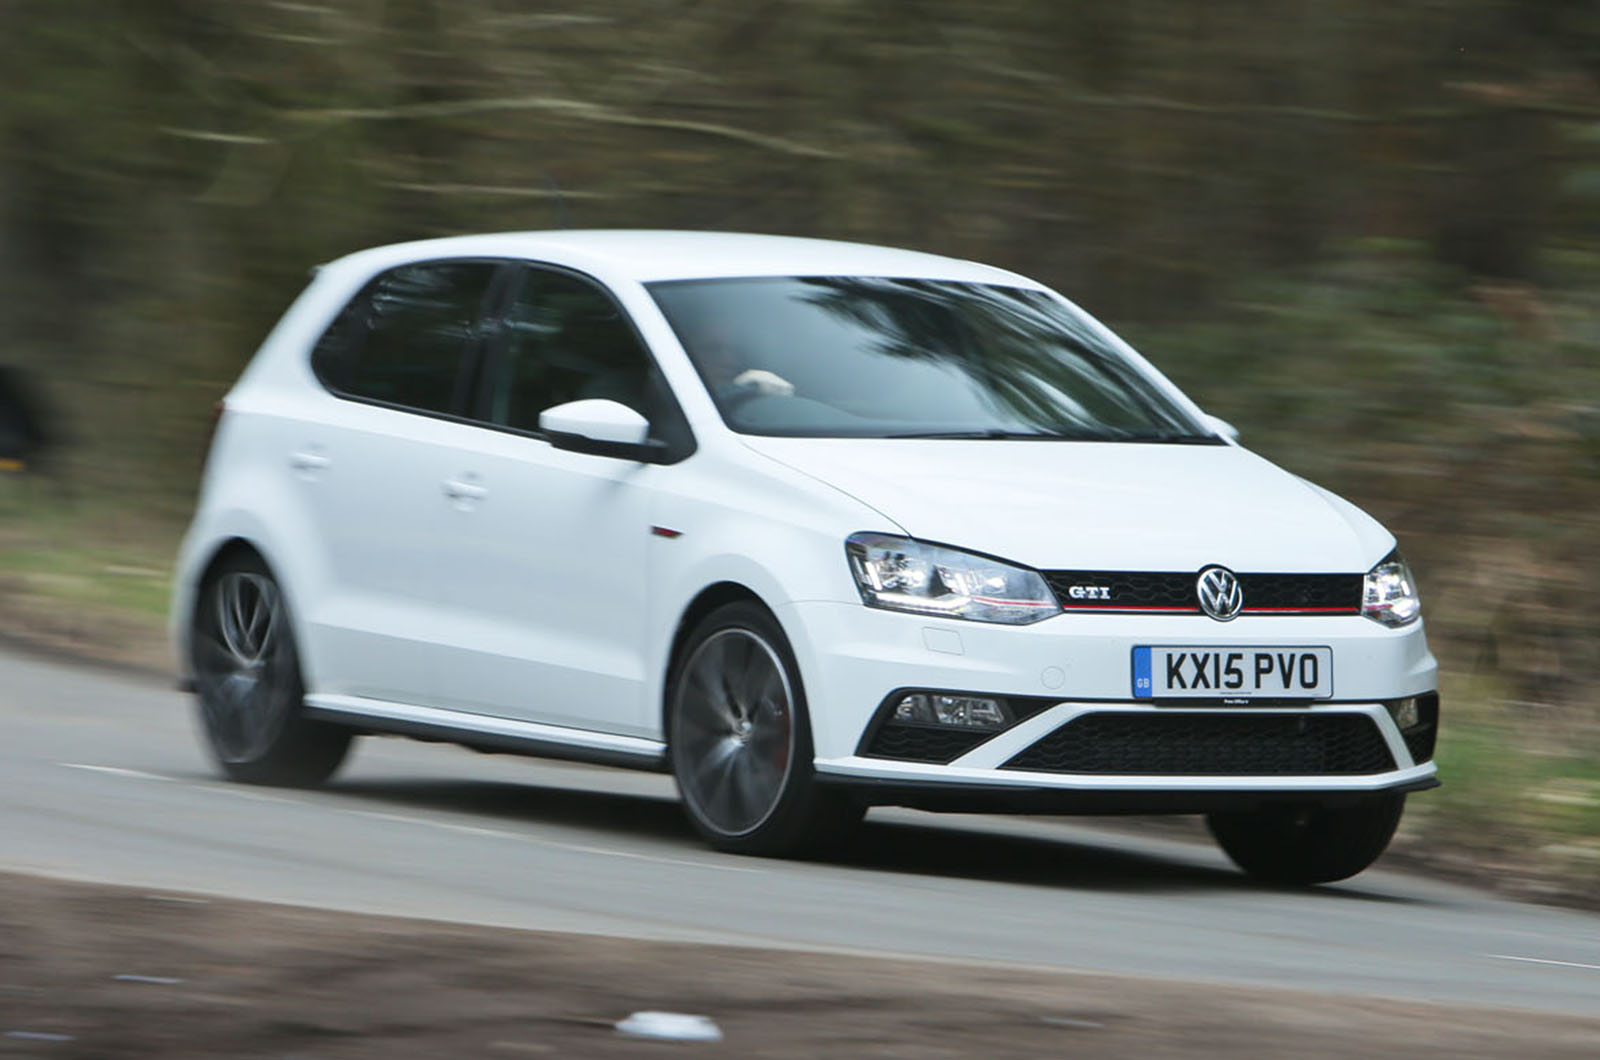 Volkswagen Polo Gti 2010 2017 Review 2021 Autocar